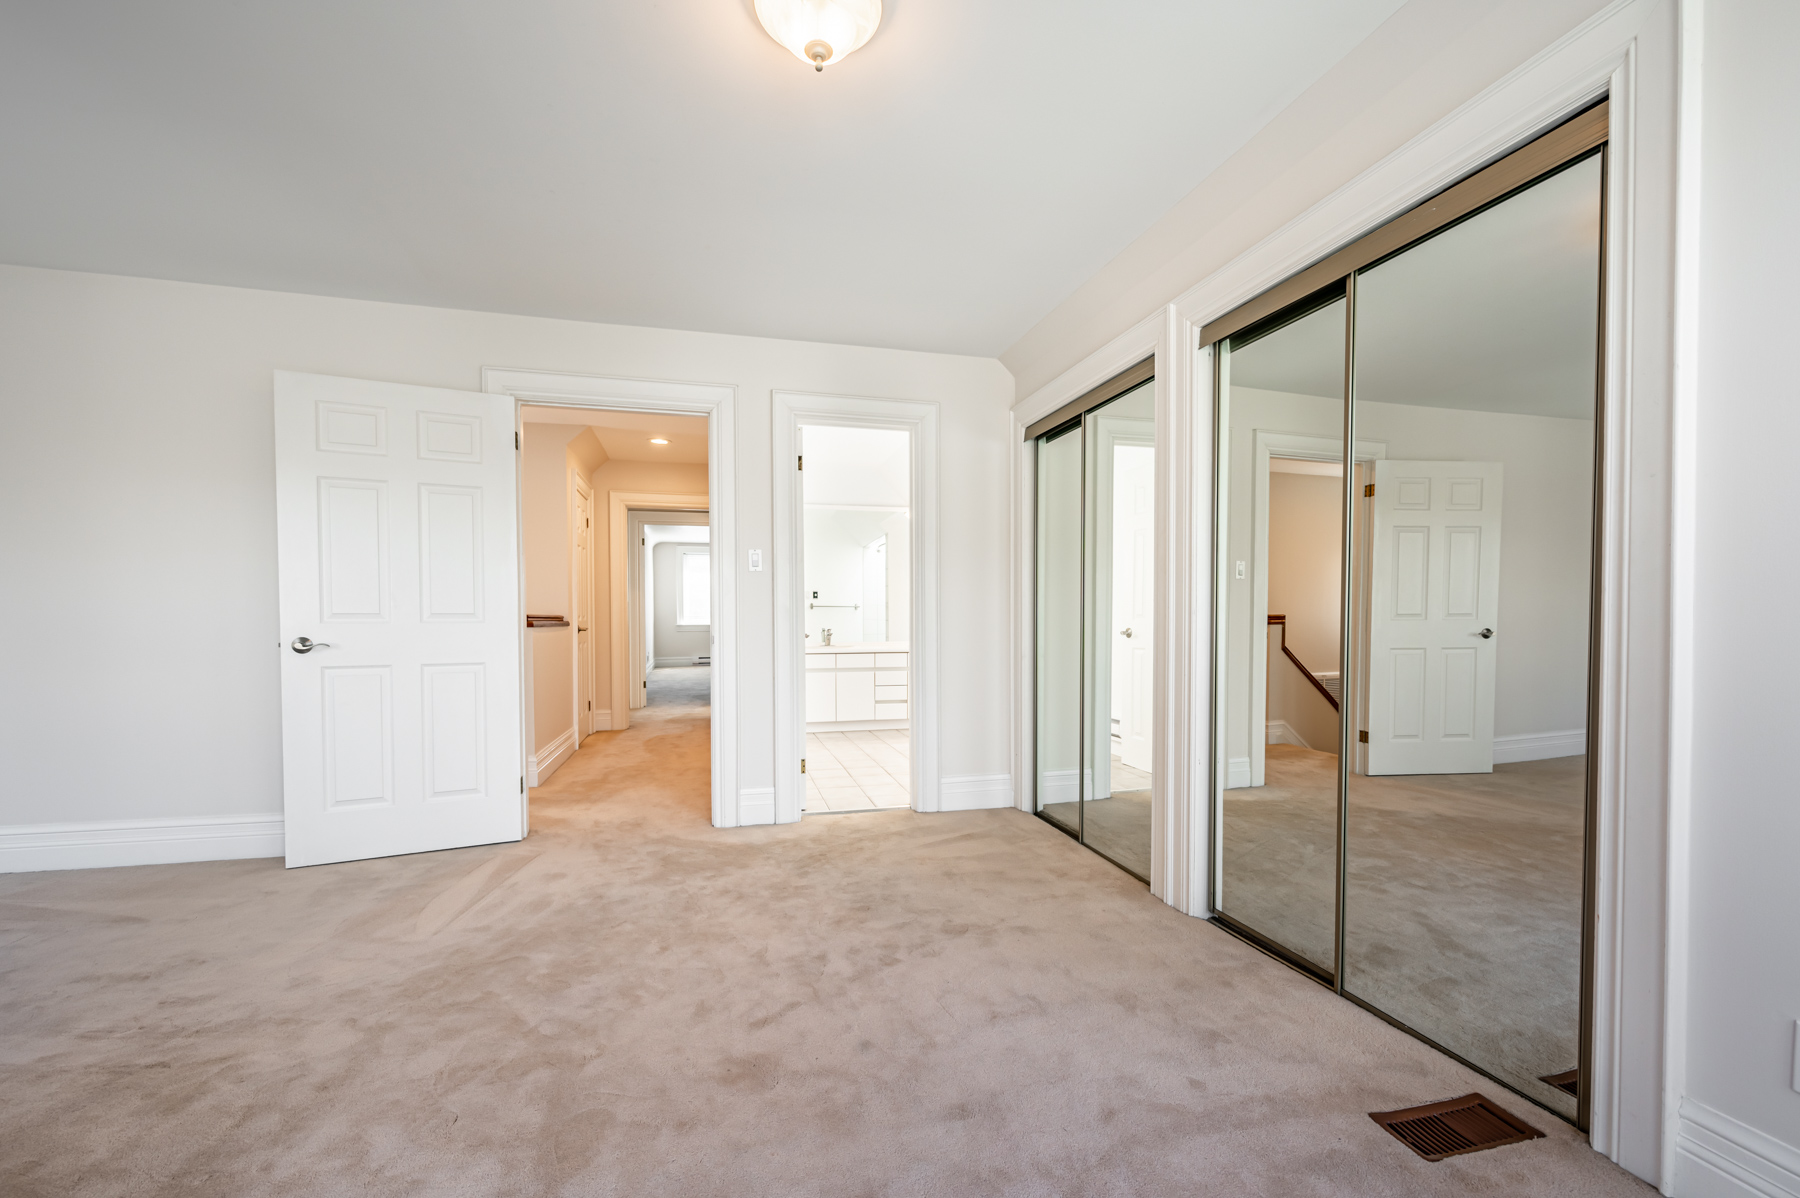 Bedroom with his and her closets with sliding mirror doors.